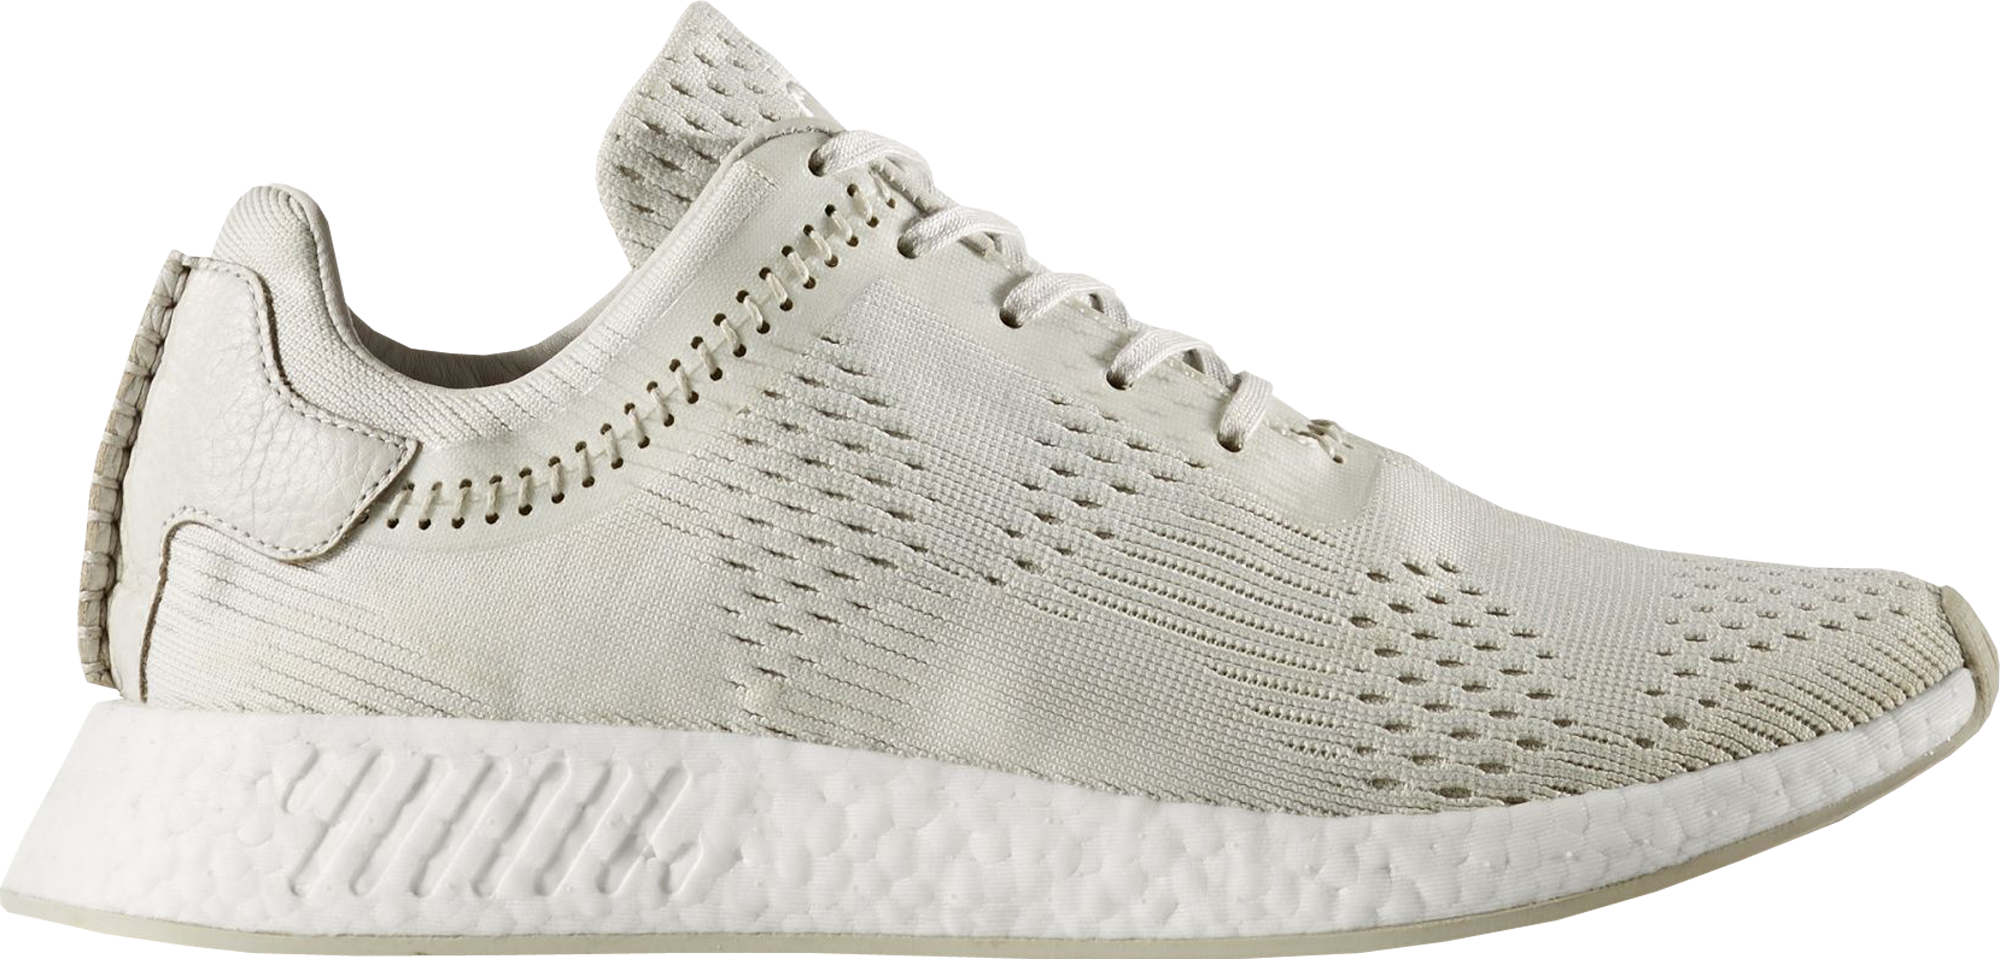 adidas NMD R2 Wings and Horns Hint